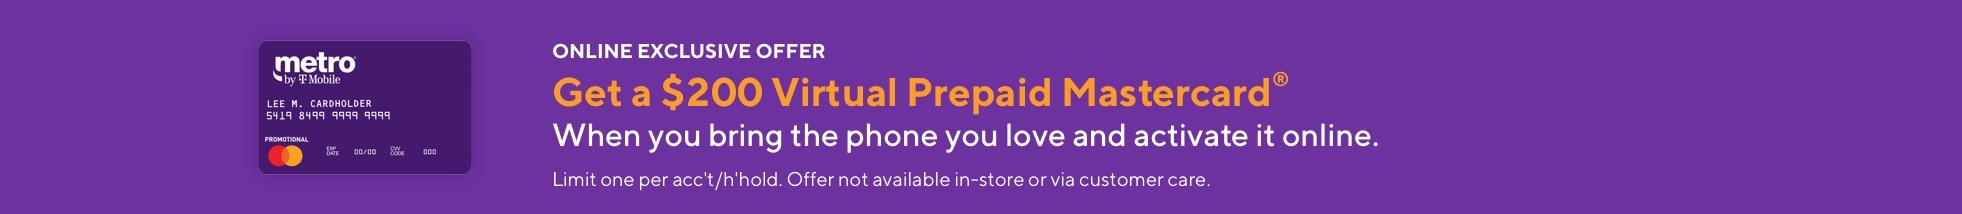 Online exclusive offer. Get a $200 virtual prepaid Mastercard when you bring the phone you love to Metro by T-Mobile and activate it online. Limit one per account/household. Offer not available in-store or via customer care.